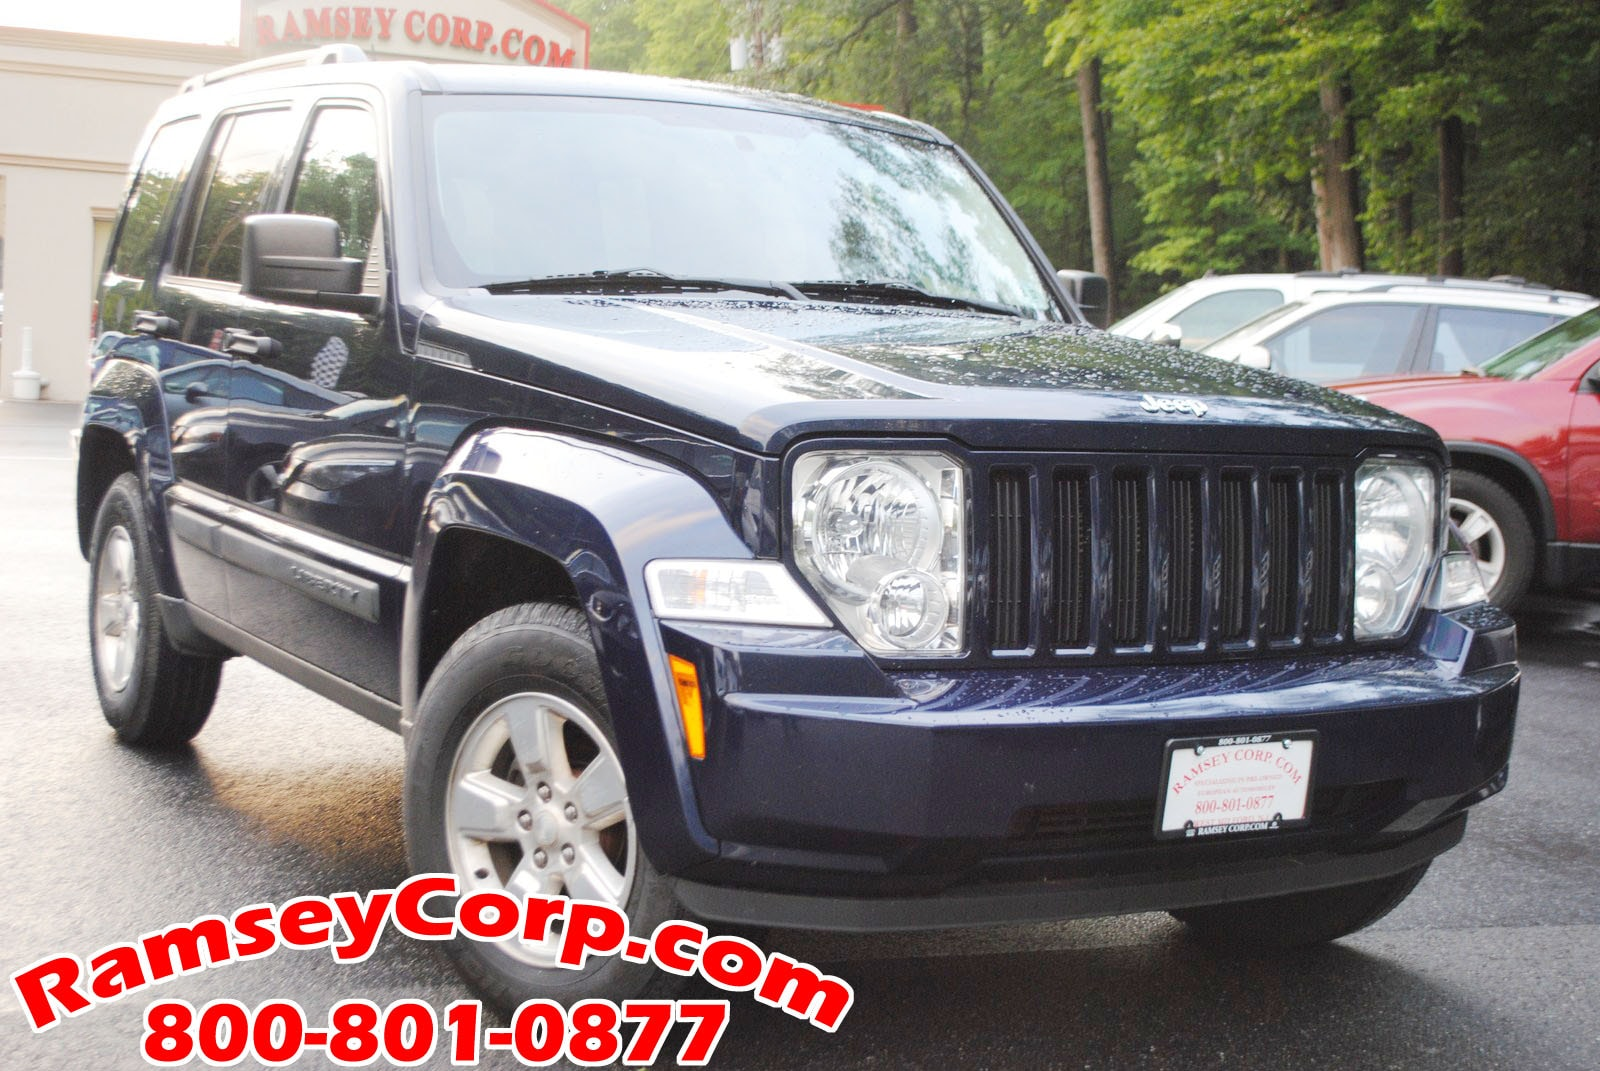 used 2012 jeep liberty for sale west milford nj. Black Bedroom Furniture Sets. Home Design Ideas